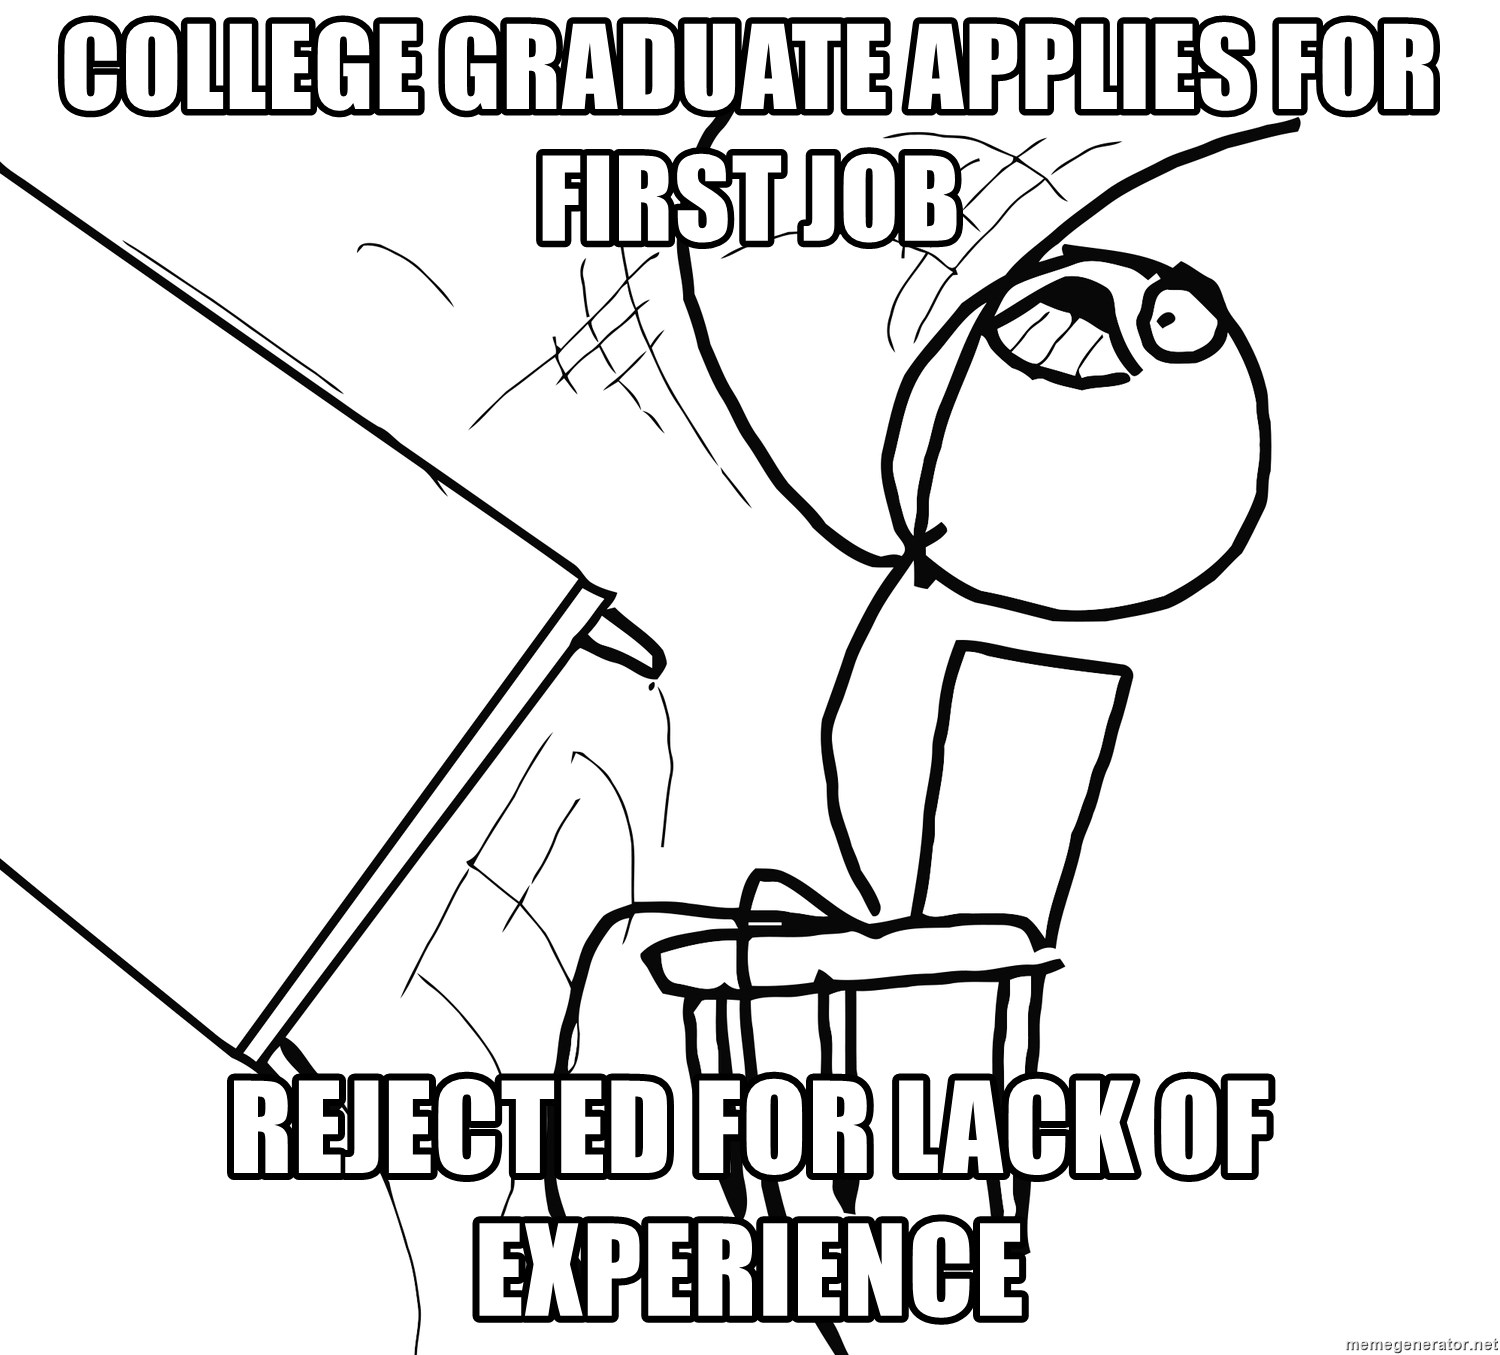 Desk Flip Rage Guy - College graduate applies for first job rejected for lack of experience